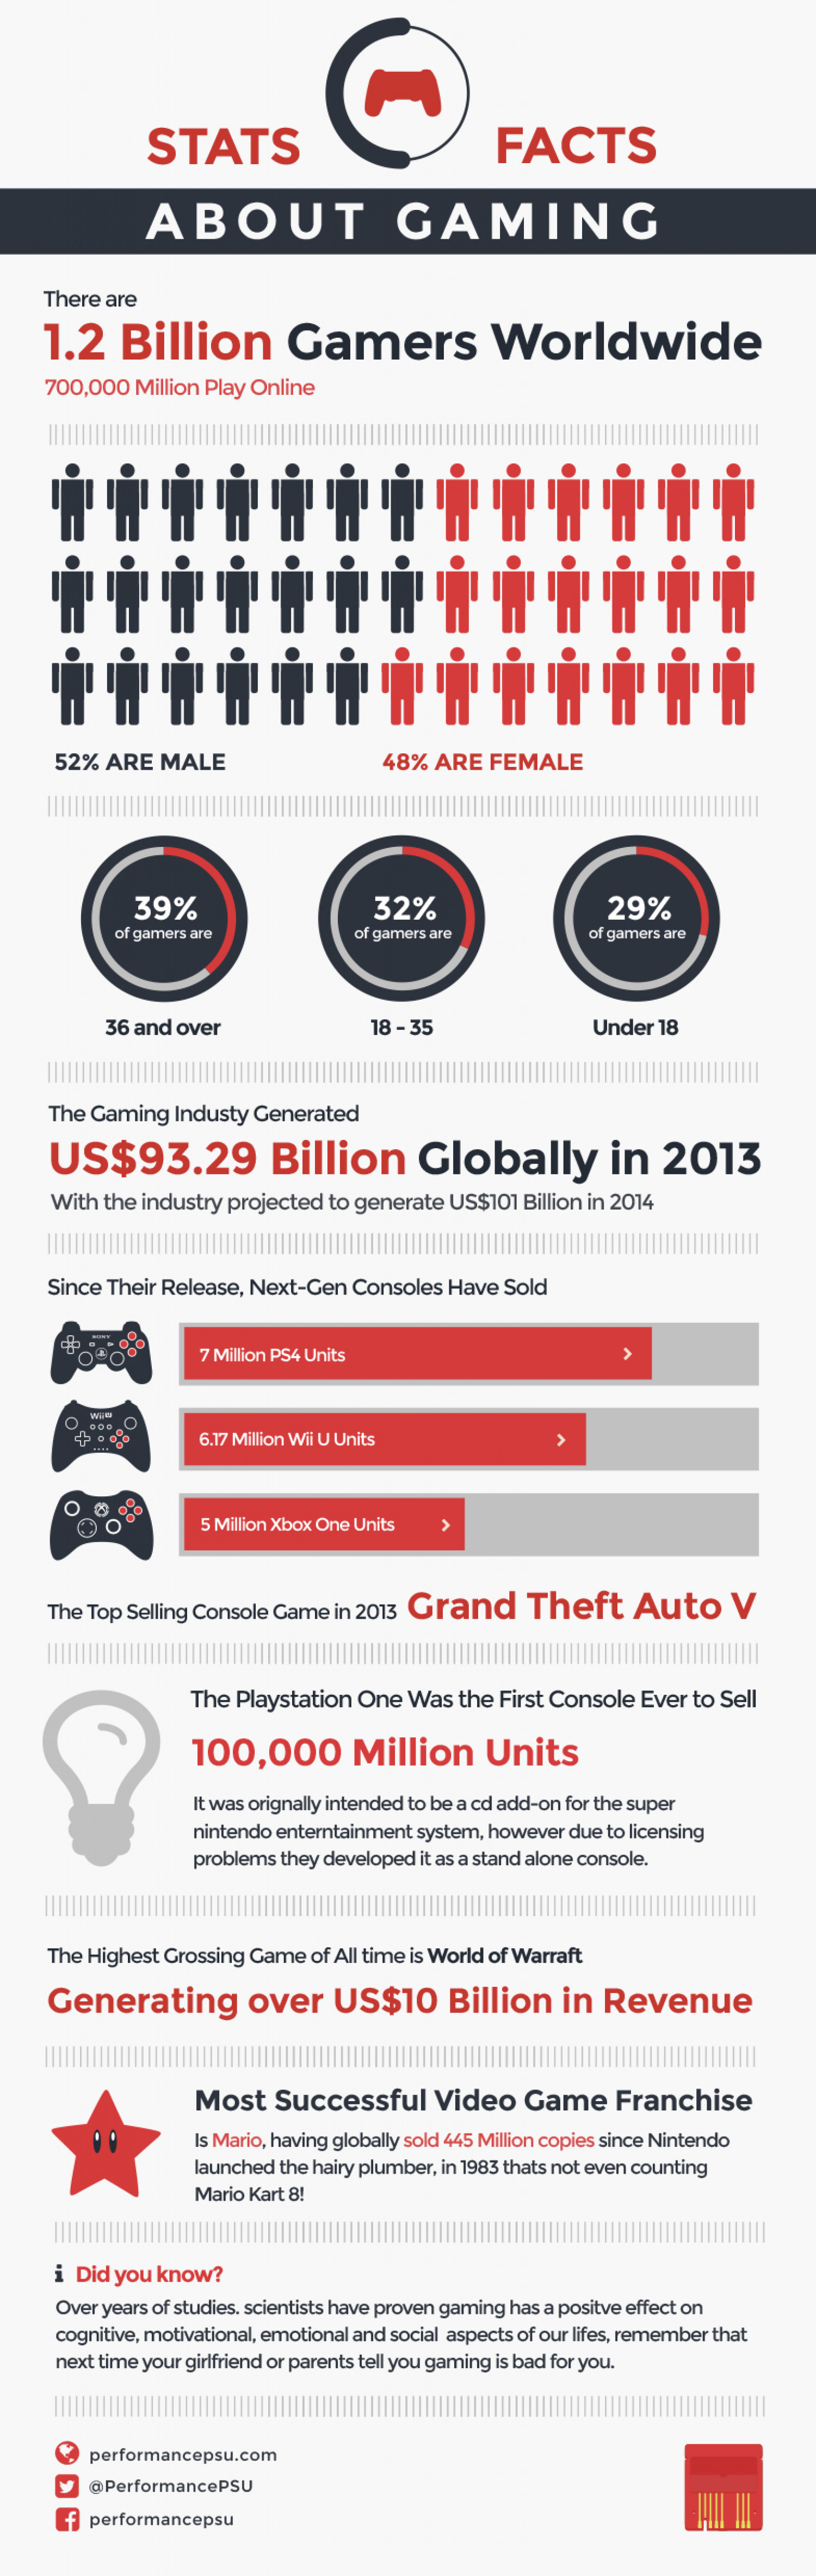 Statistics & Facts about the Gaming Industry - Infographic Infographic